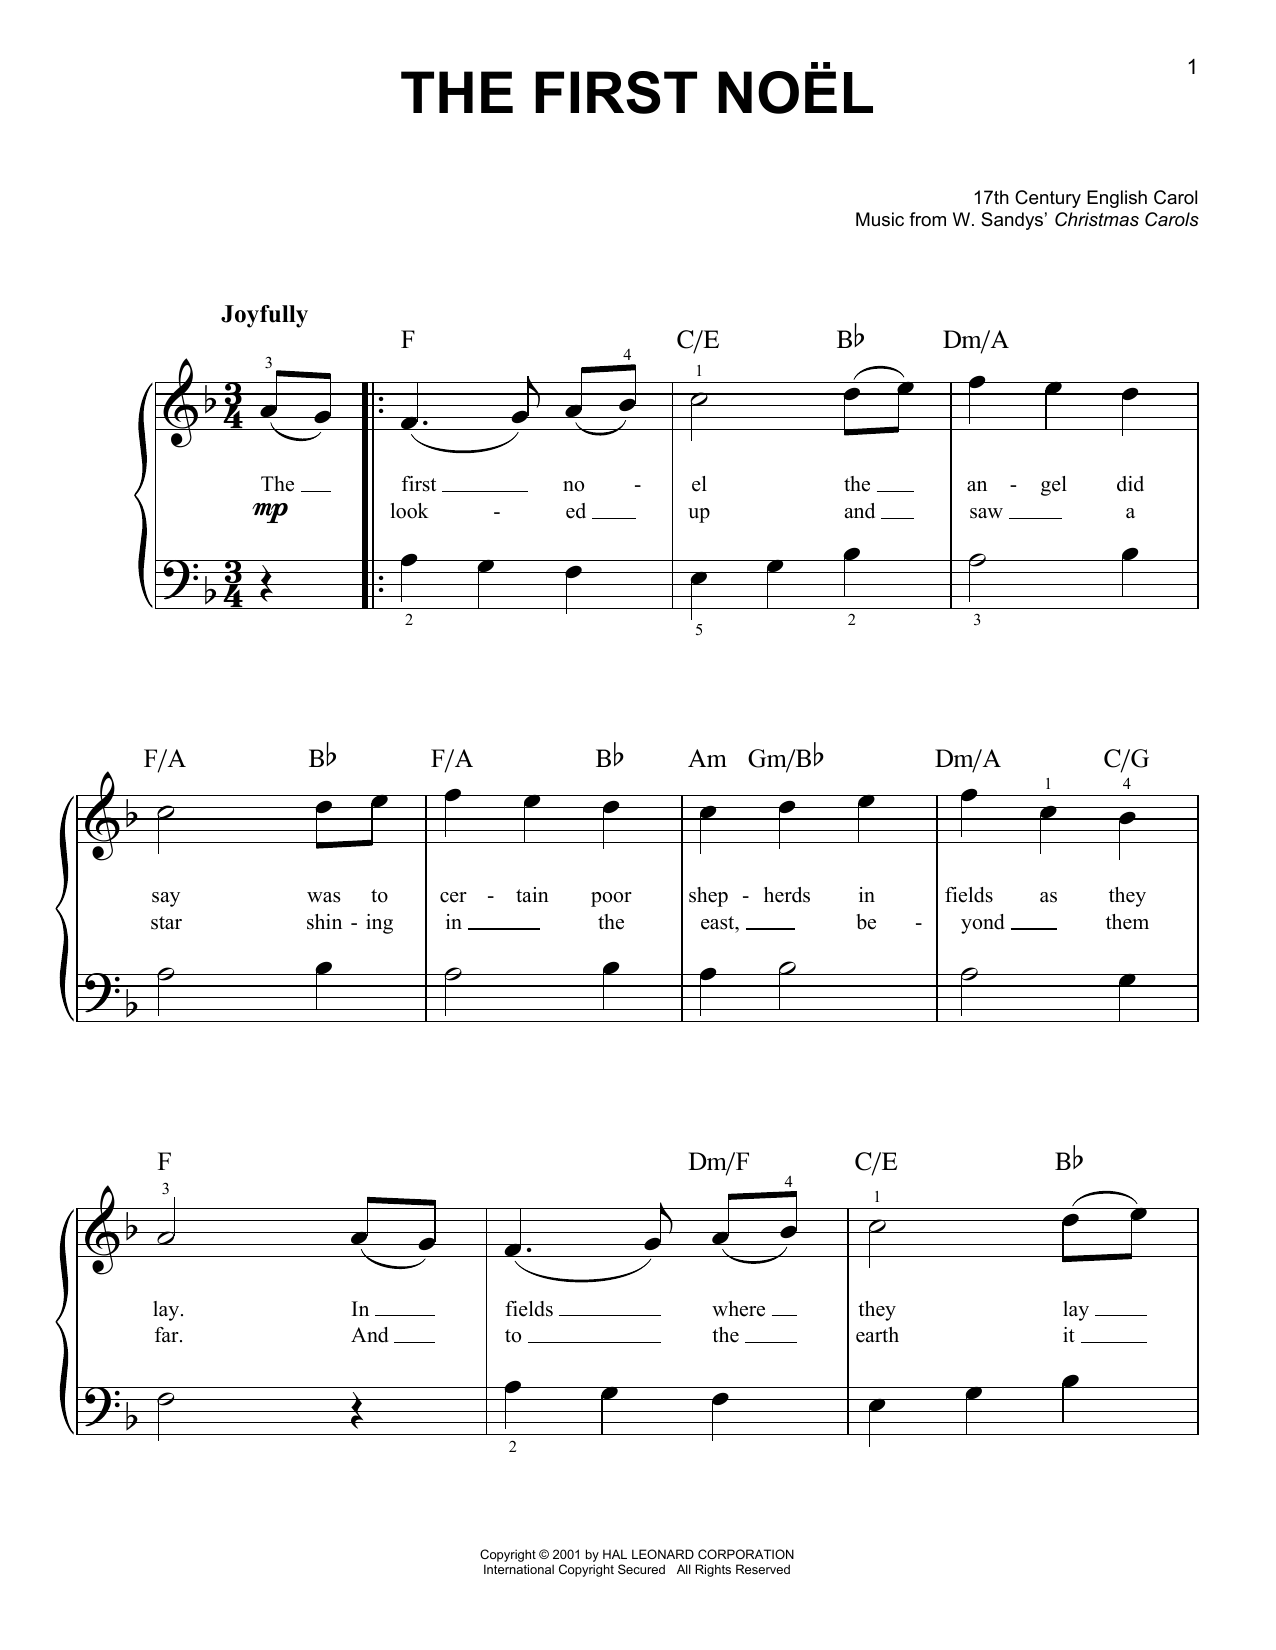 Christmas Music Notes.W Sandys Christmas Carols The First Noel Sheet Music Notes Chords Download Printable Easy Piano Sku 159978